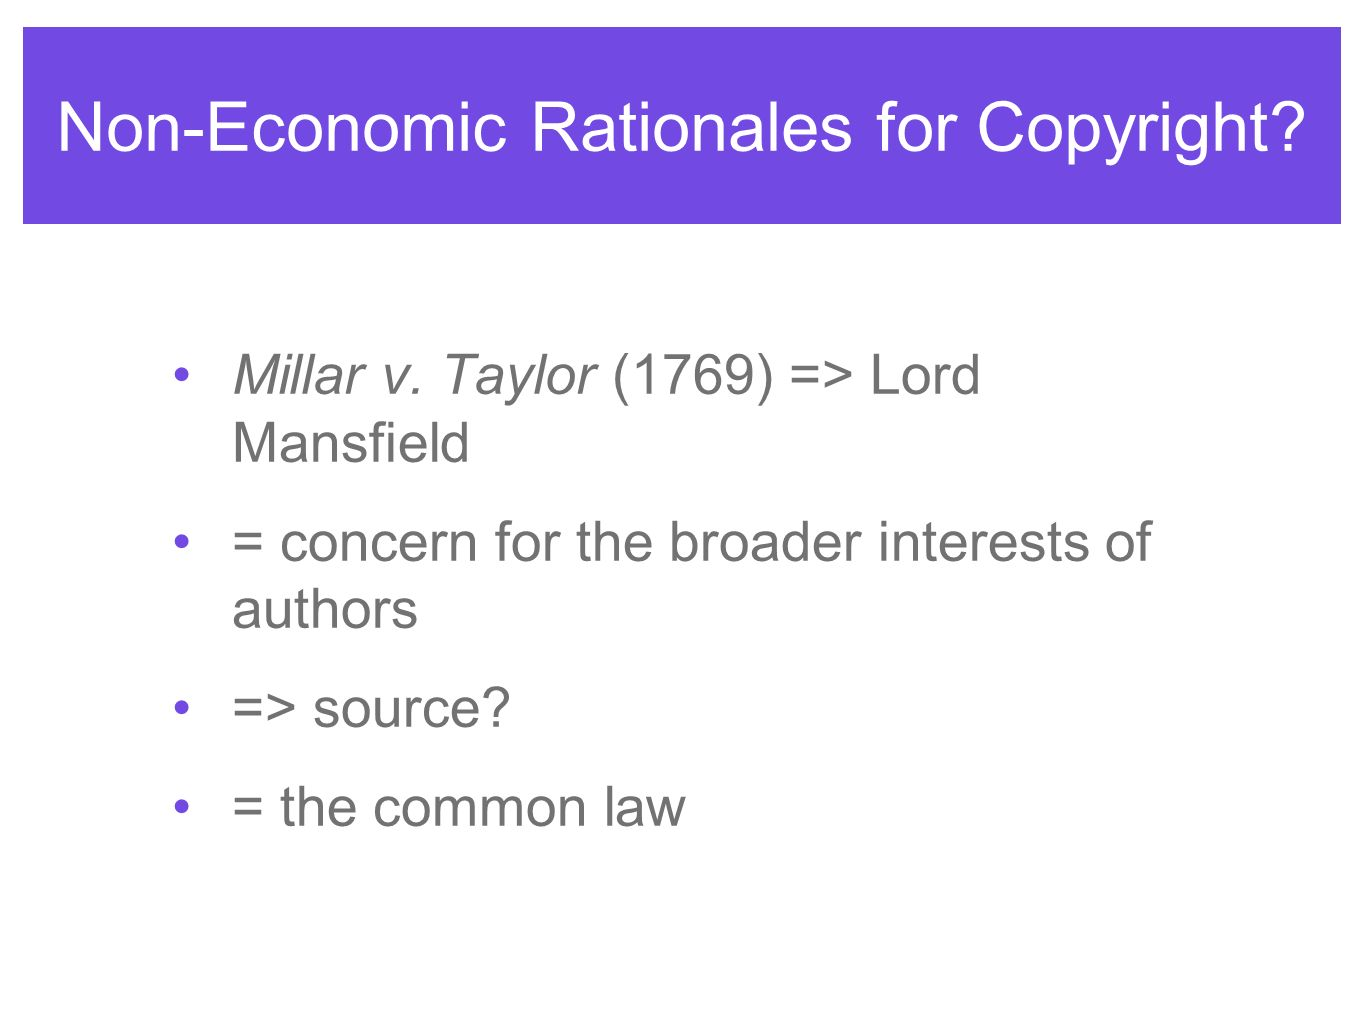 Non-Economic Rationales for Copyright